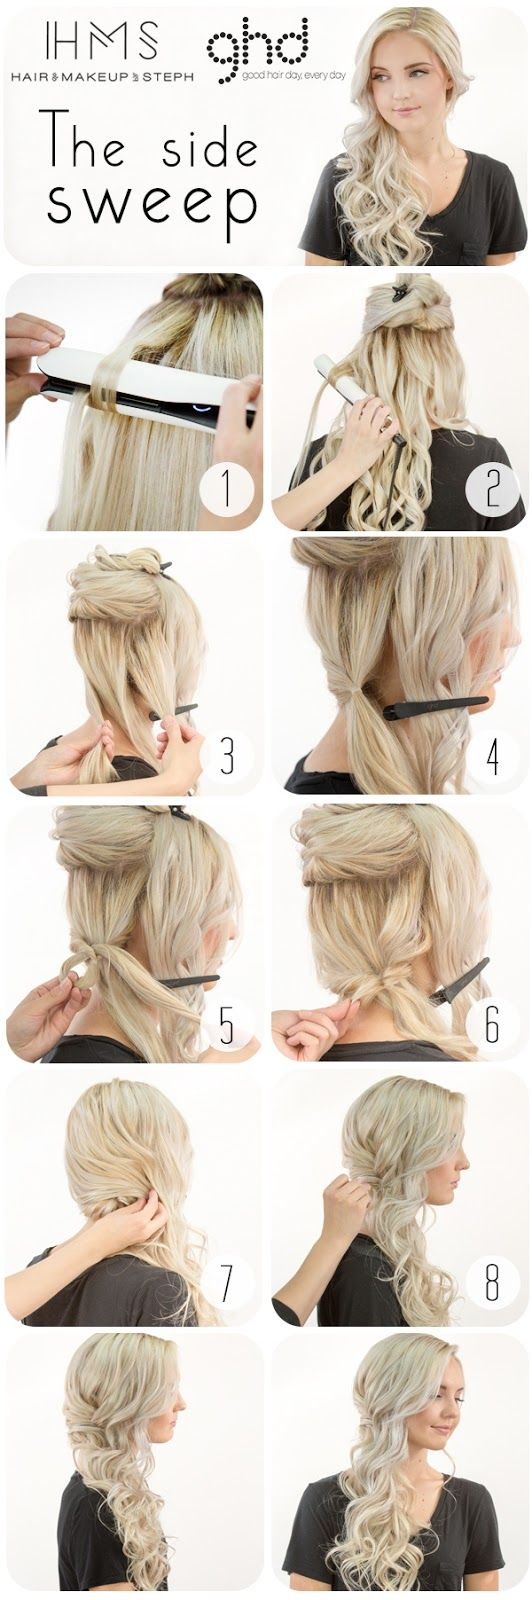 How To: Bridal Side Swept Hair | Side swept, Side sweep hair and Ghd